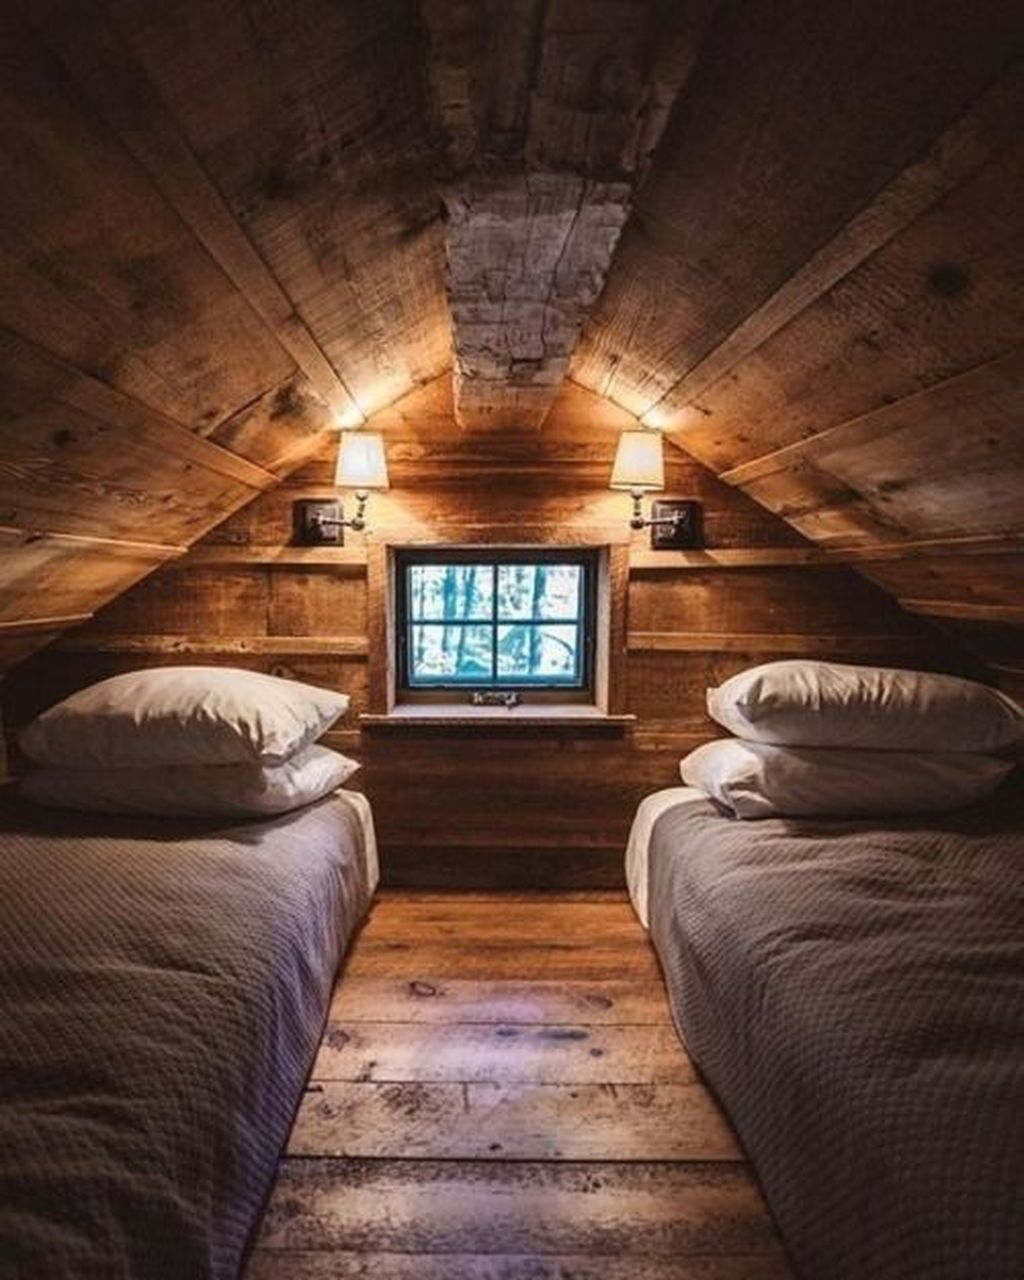 47 Relaxing Cabins Room Design Ideas For Getaways This Holiday Season